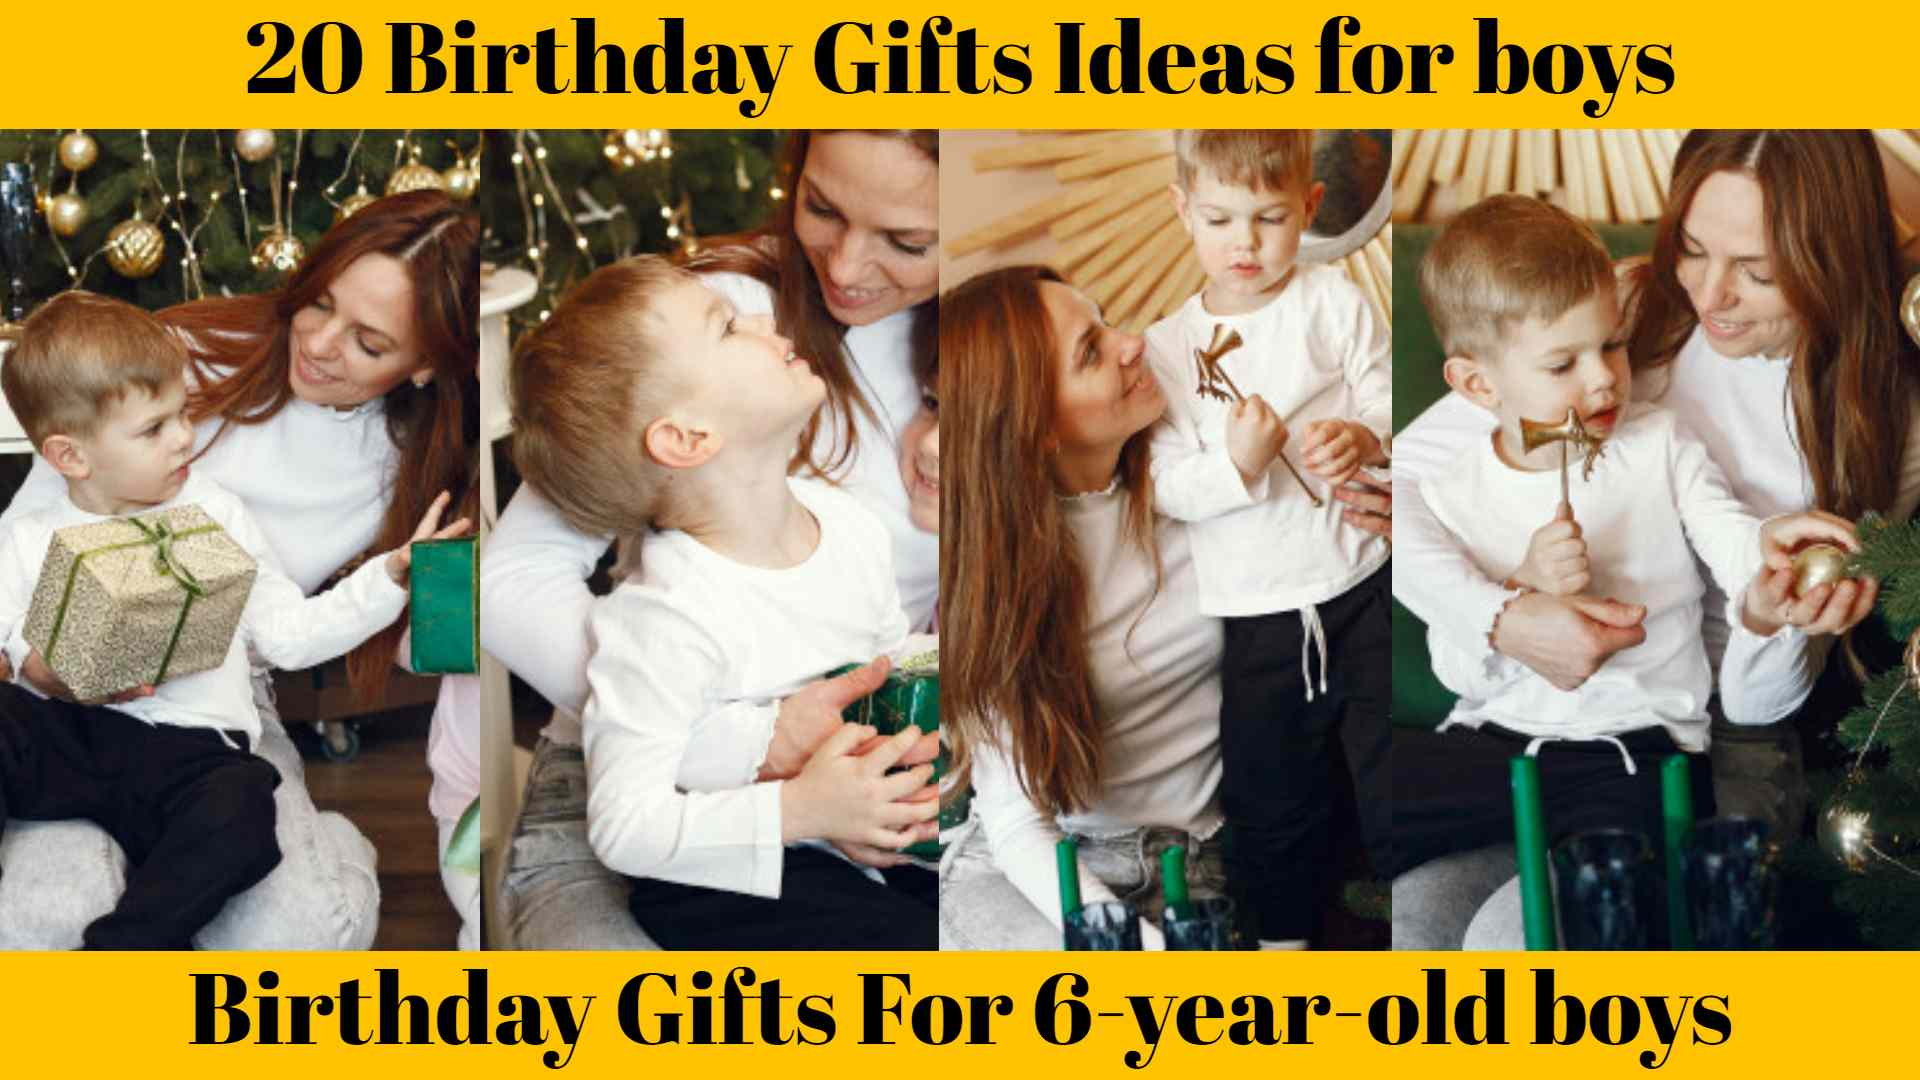 Awesome Birthday Gifts For 6-year-old boys :20 Birthday Gifts Ideas for boys